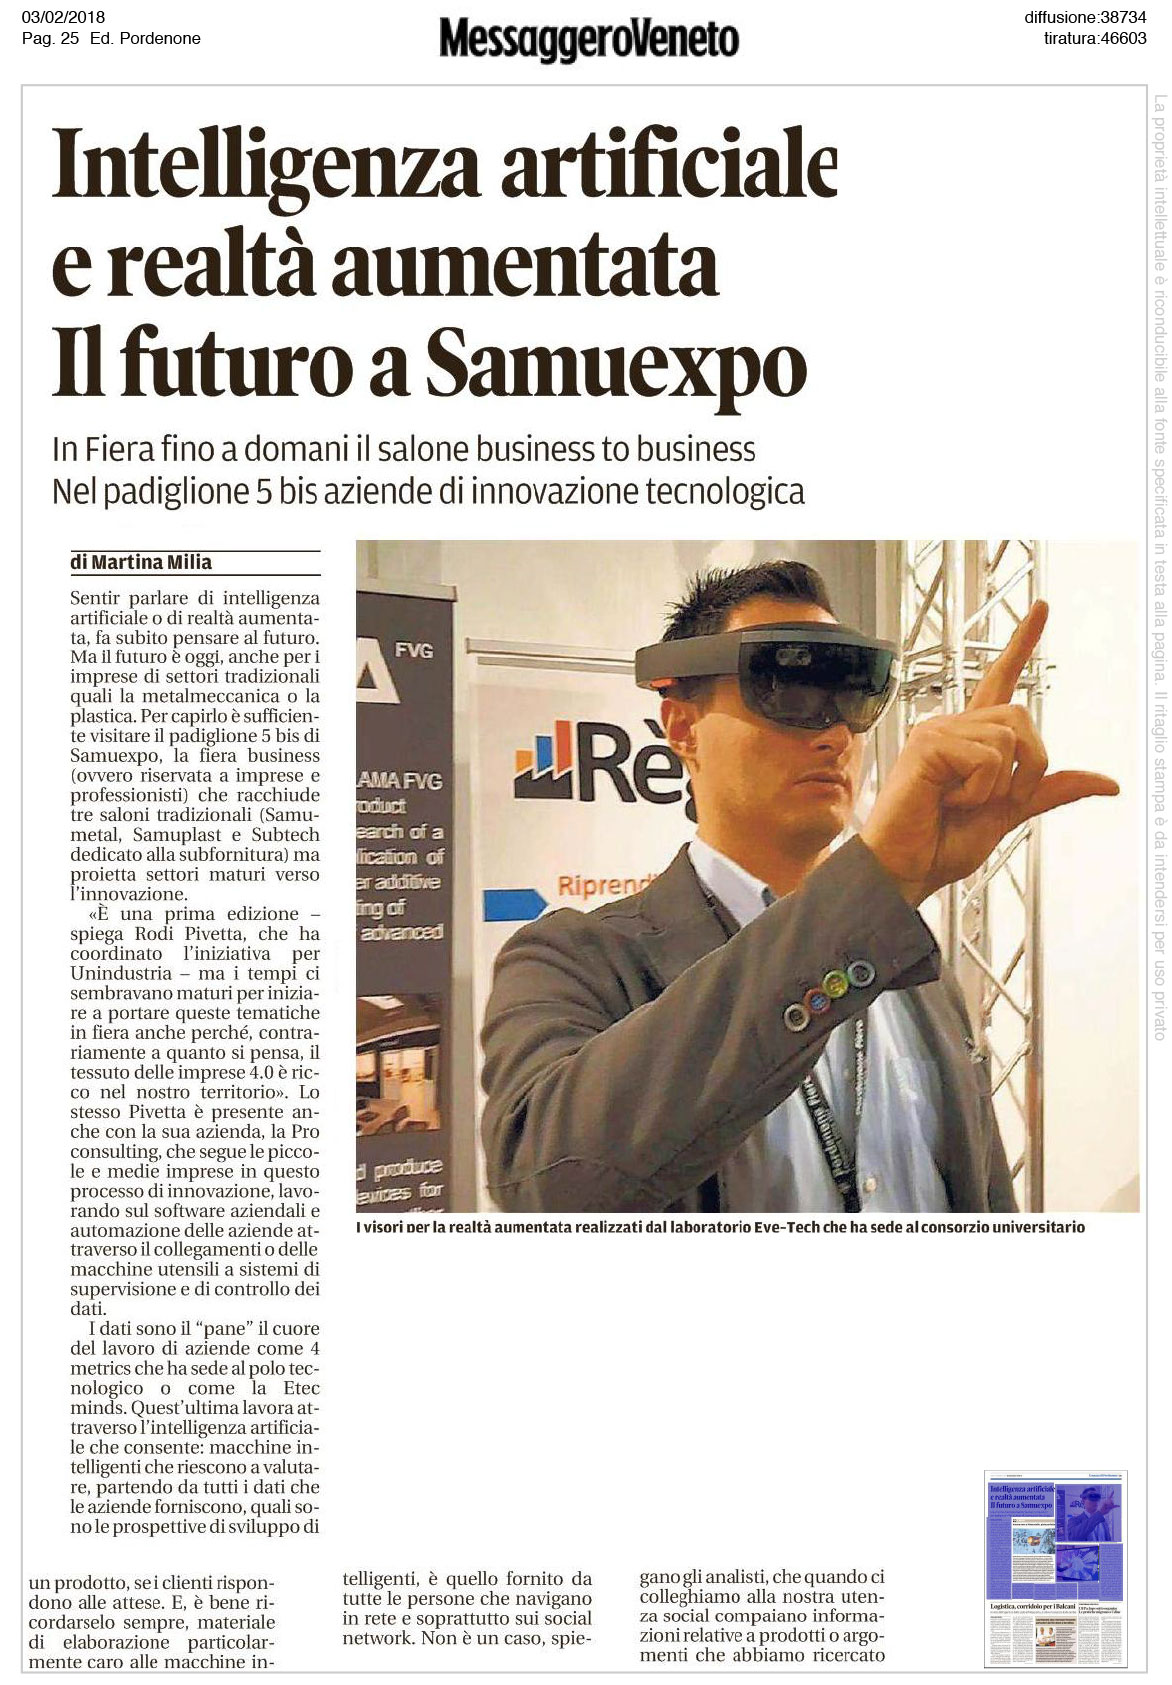 meess art 1 Messaggero Veneto   03/02/2018